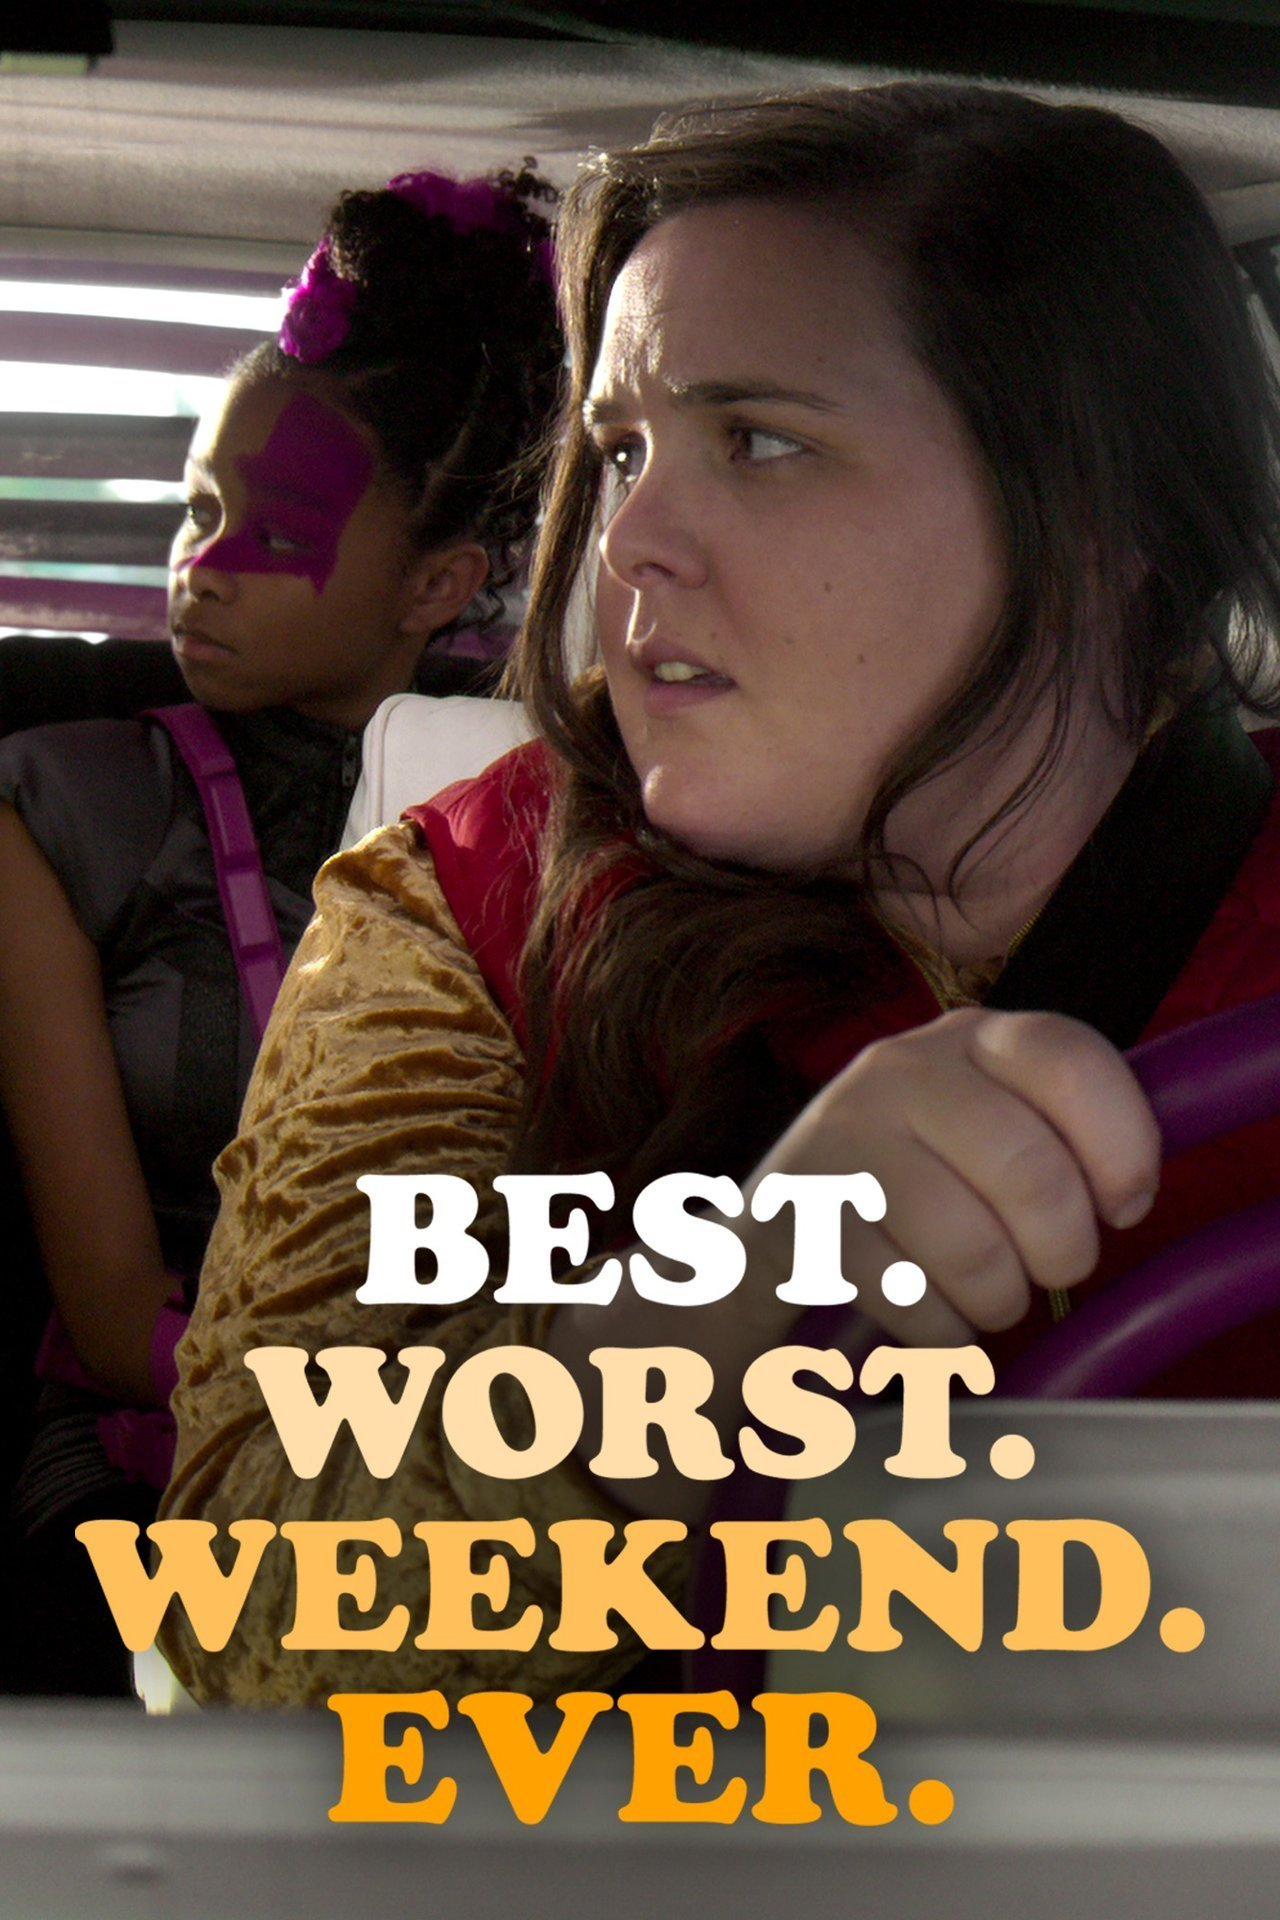 È uscito il trailer di Best. Worst. Weekend. Ever., la nuova serie Netflix | Collater.al